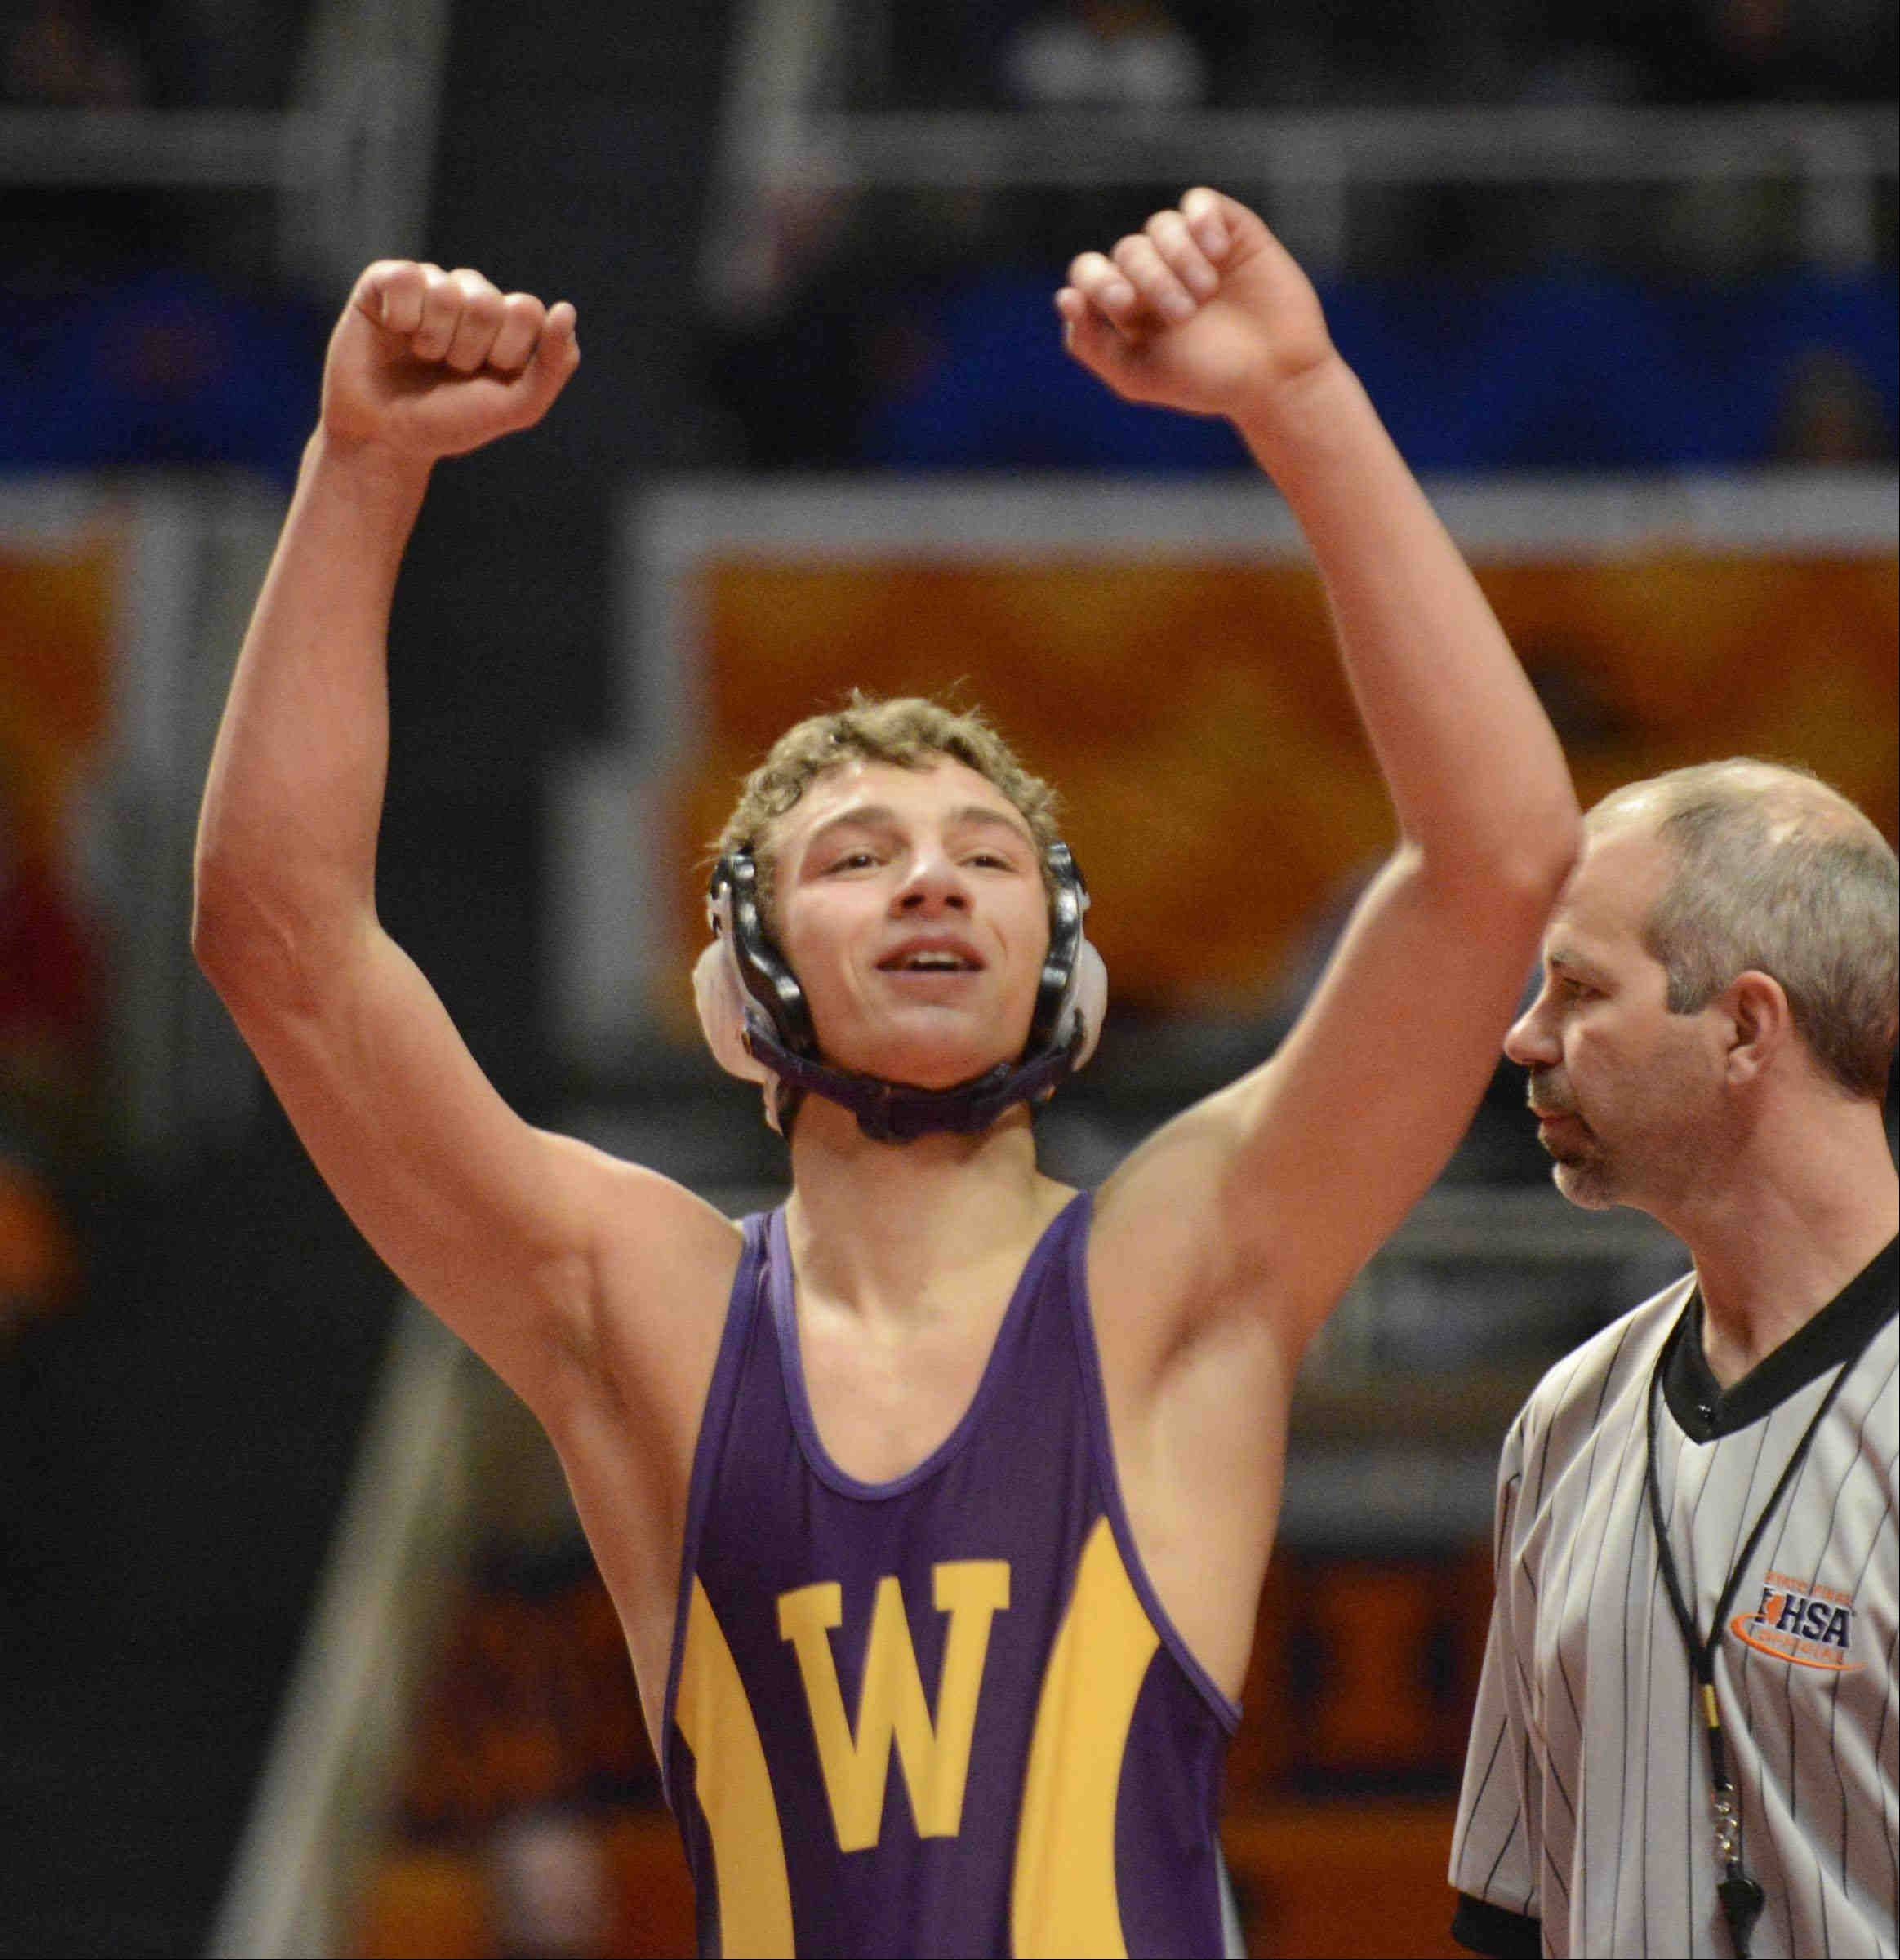 Wauconda's Devin Tortorice looks toward the crowd after winning third place against Kyle Rodruguez of Lincoln-Way West in the Class 2A 132-pound bout at Assembly Hall in Champaign.